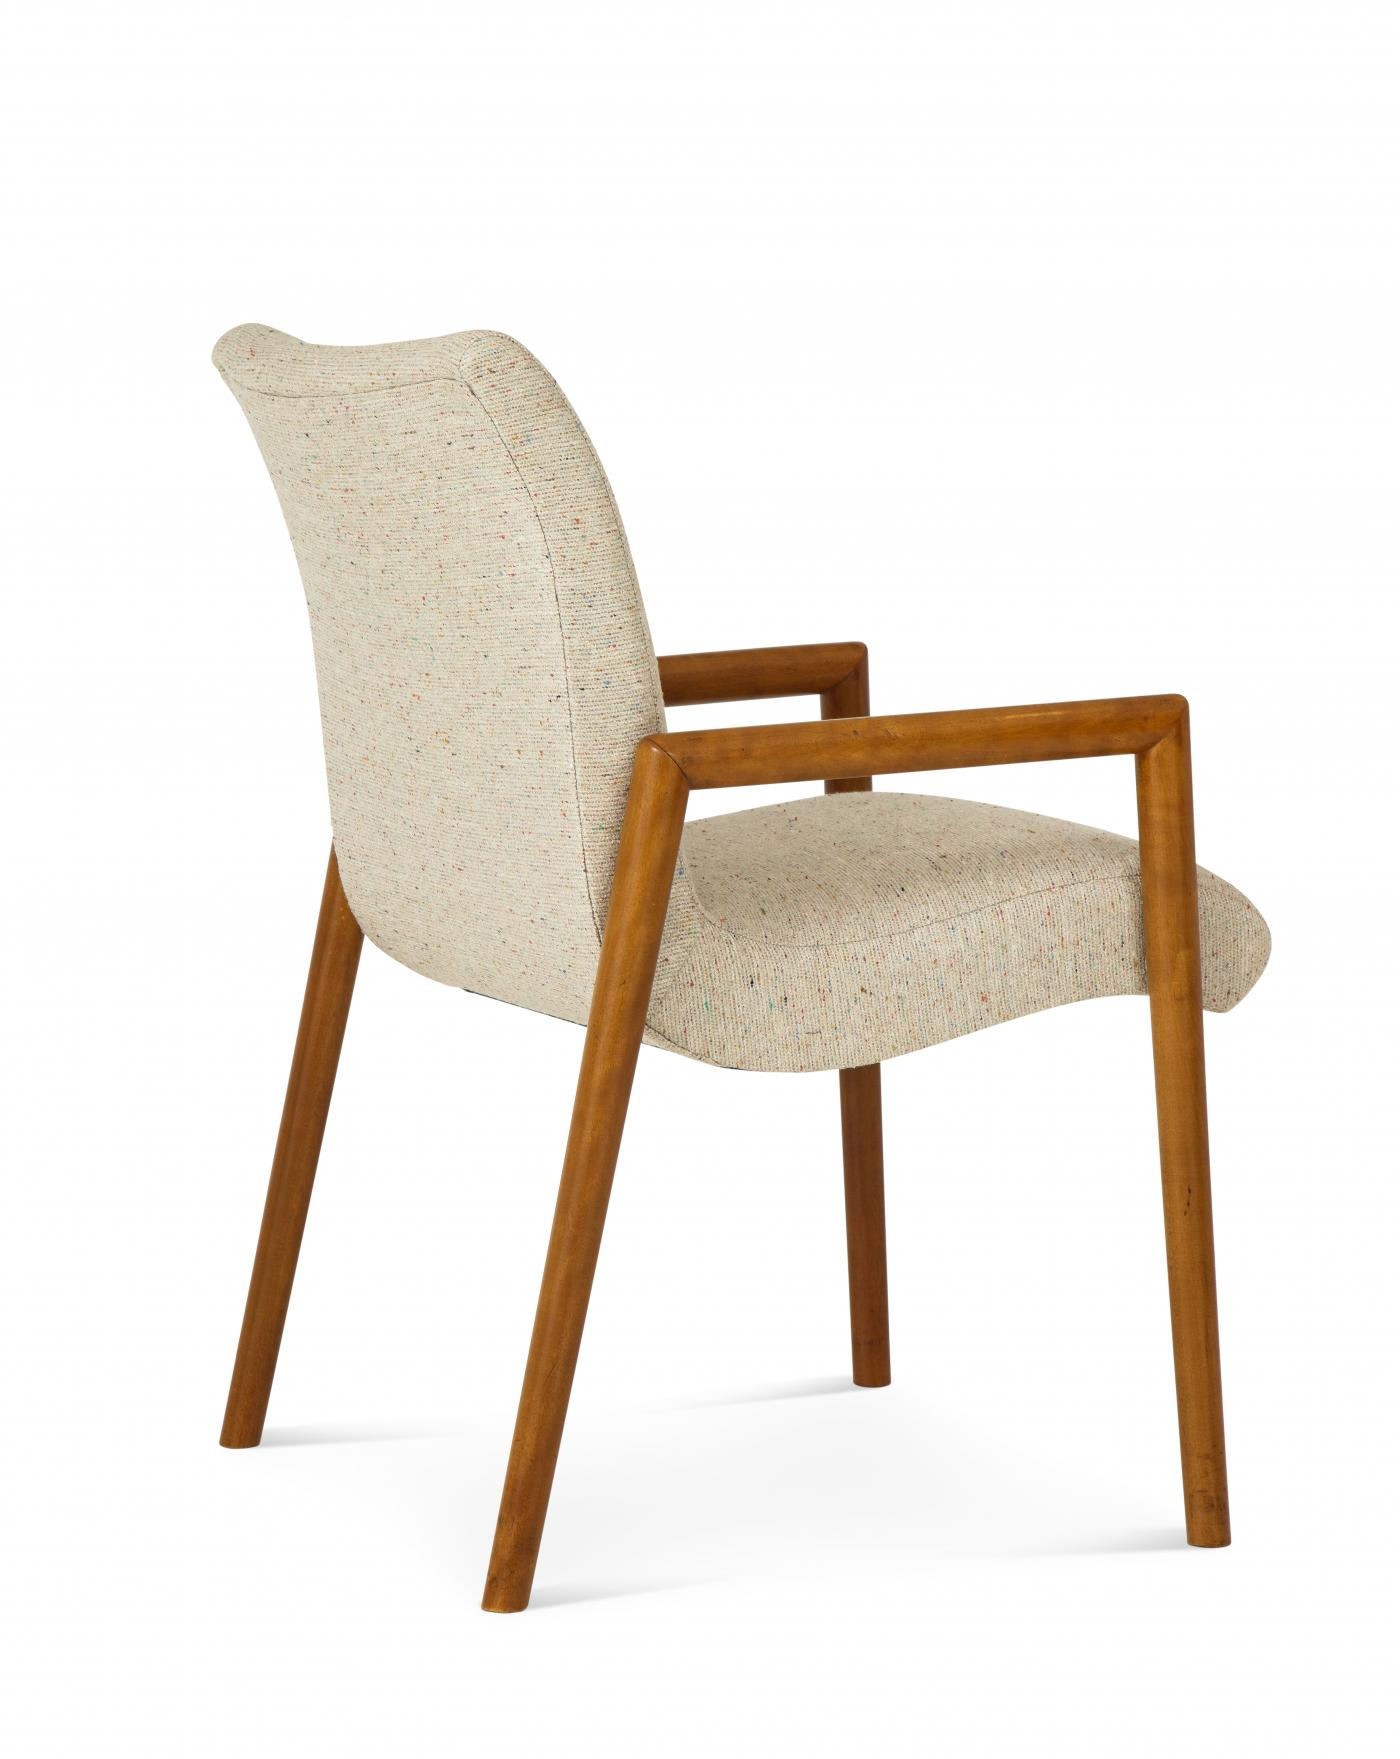 A Modernist Arm-Chairs, designed by Russel Wright for Conant Ball